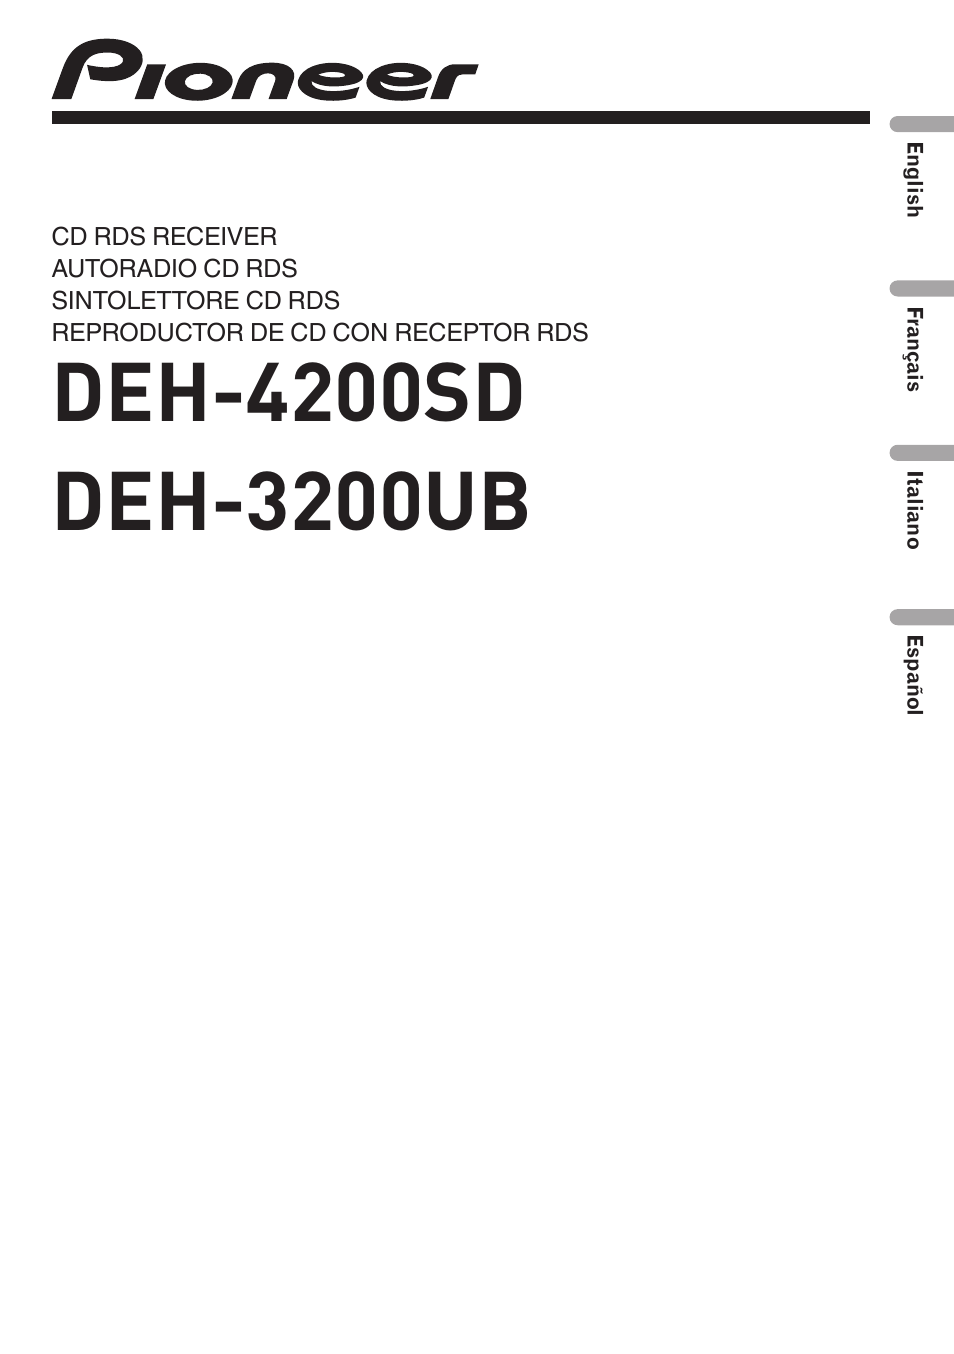 medium resolution of pioneer deh 3200ub user manual 116 pages also for deh 4200sdpioneer deh 3200 wiring diagram